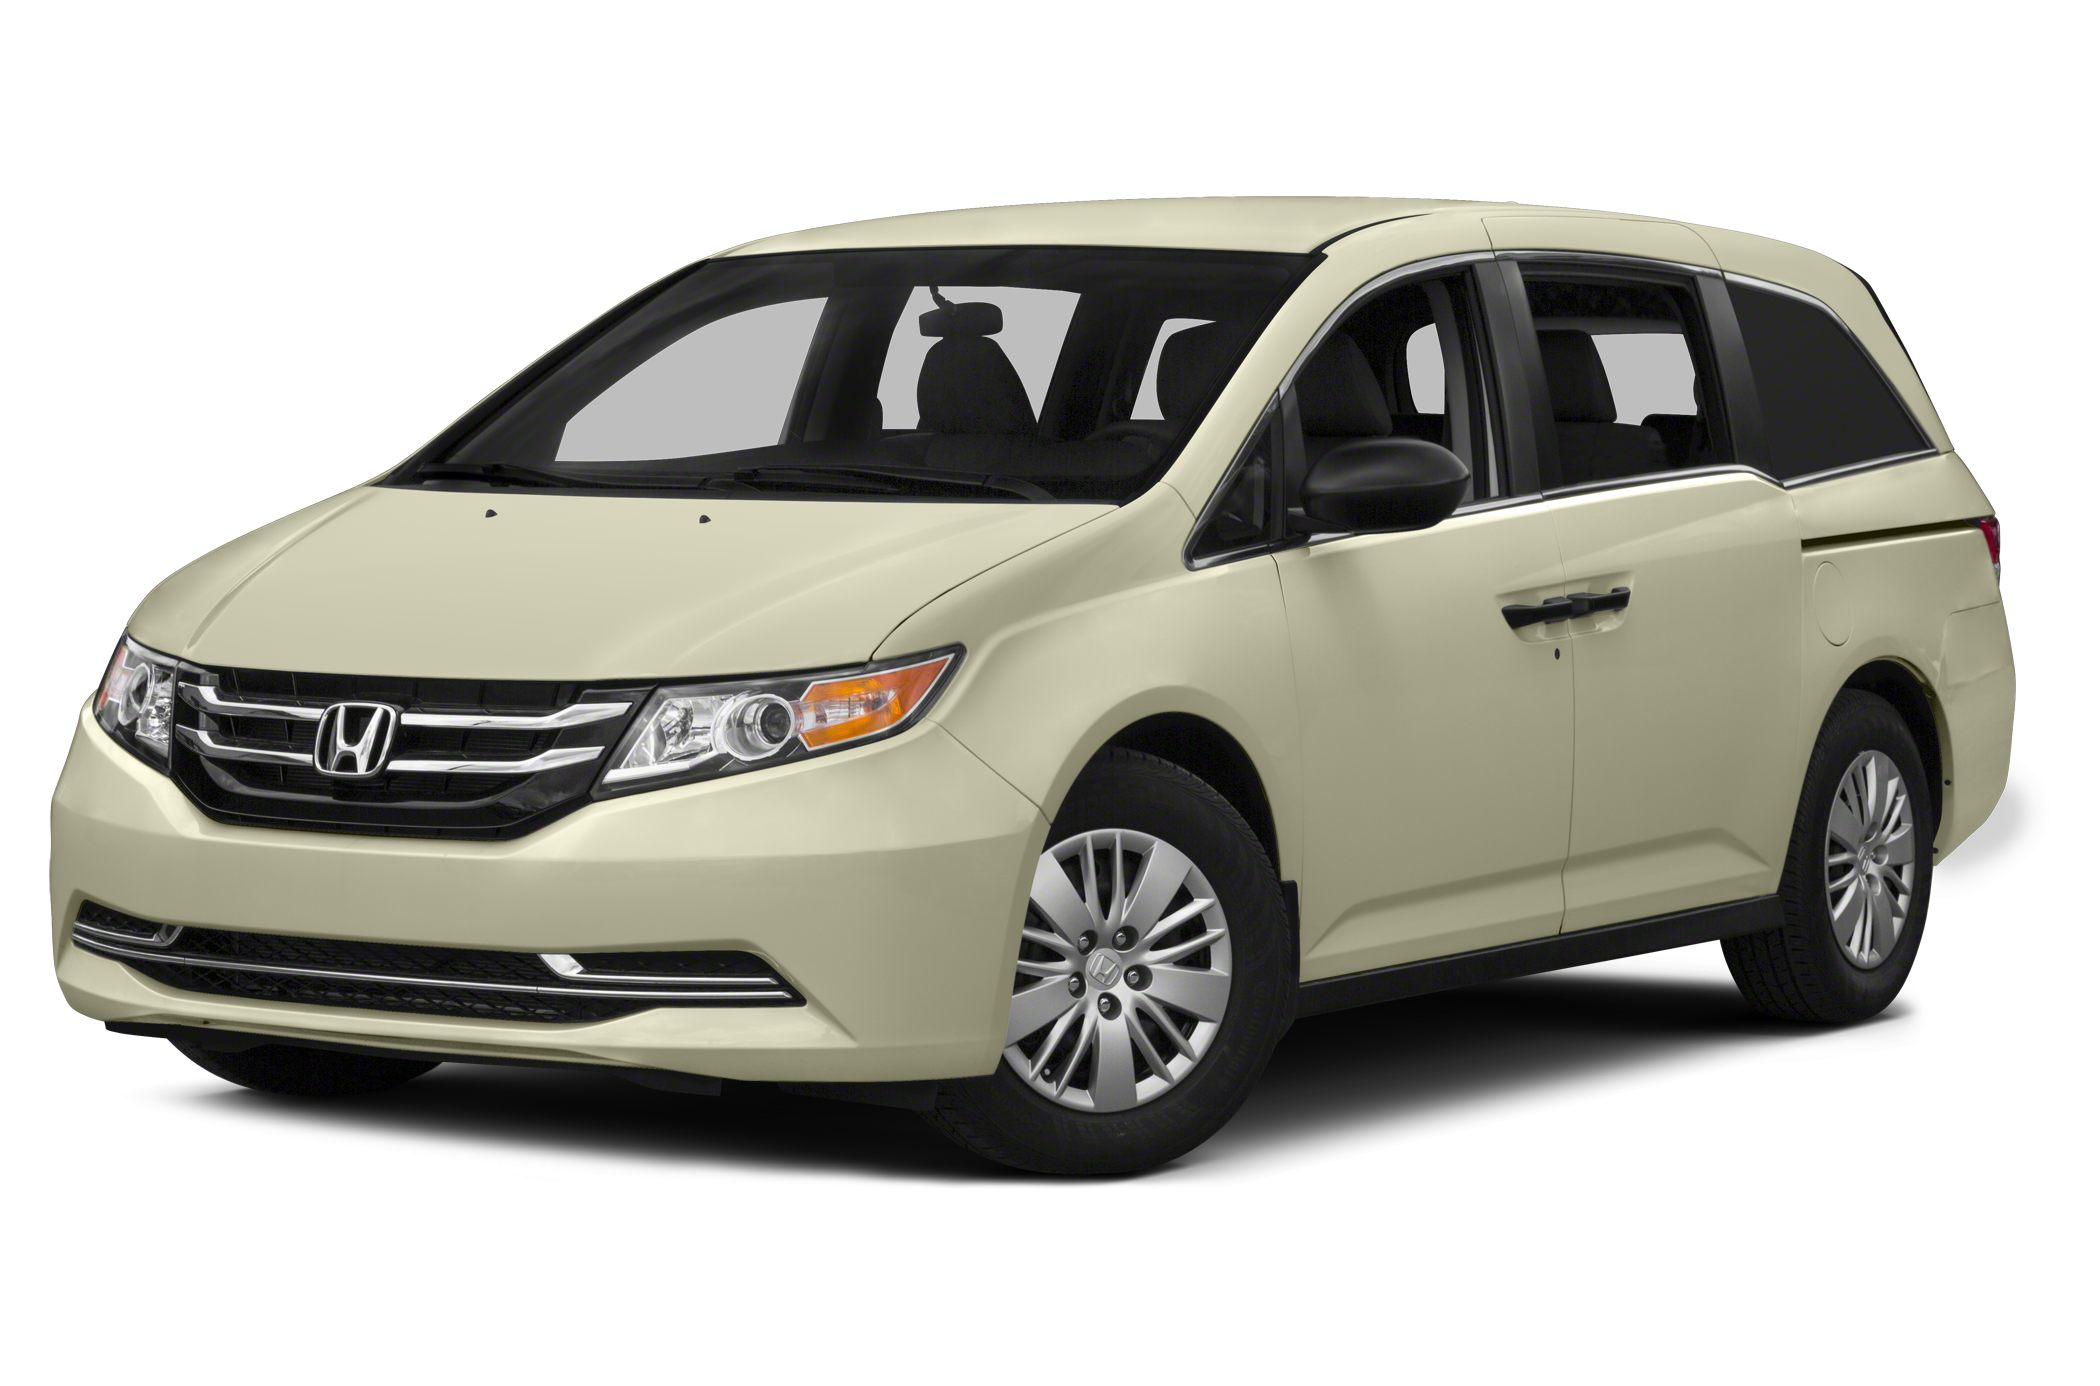 2014 Honda Odyssey LX LOW MILES - 5068 Alabaster Silver Metallic exterior and Gray interior FUE